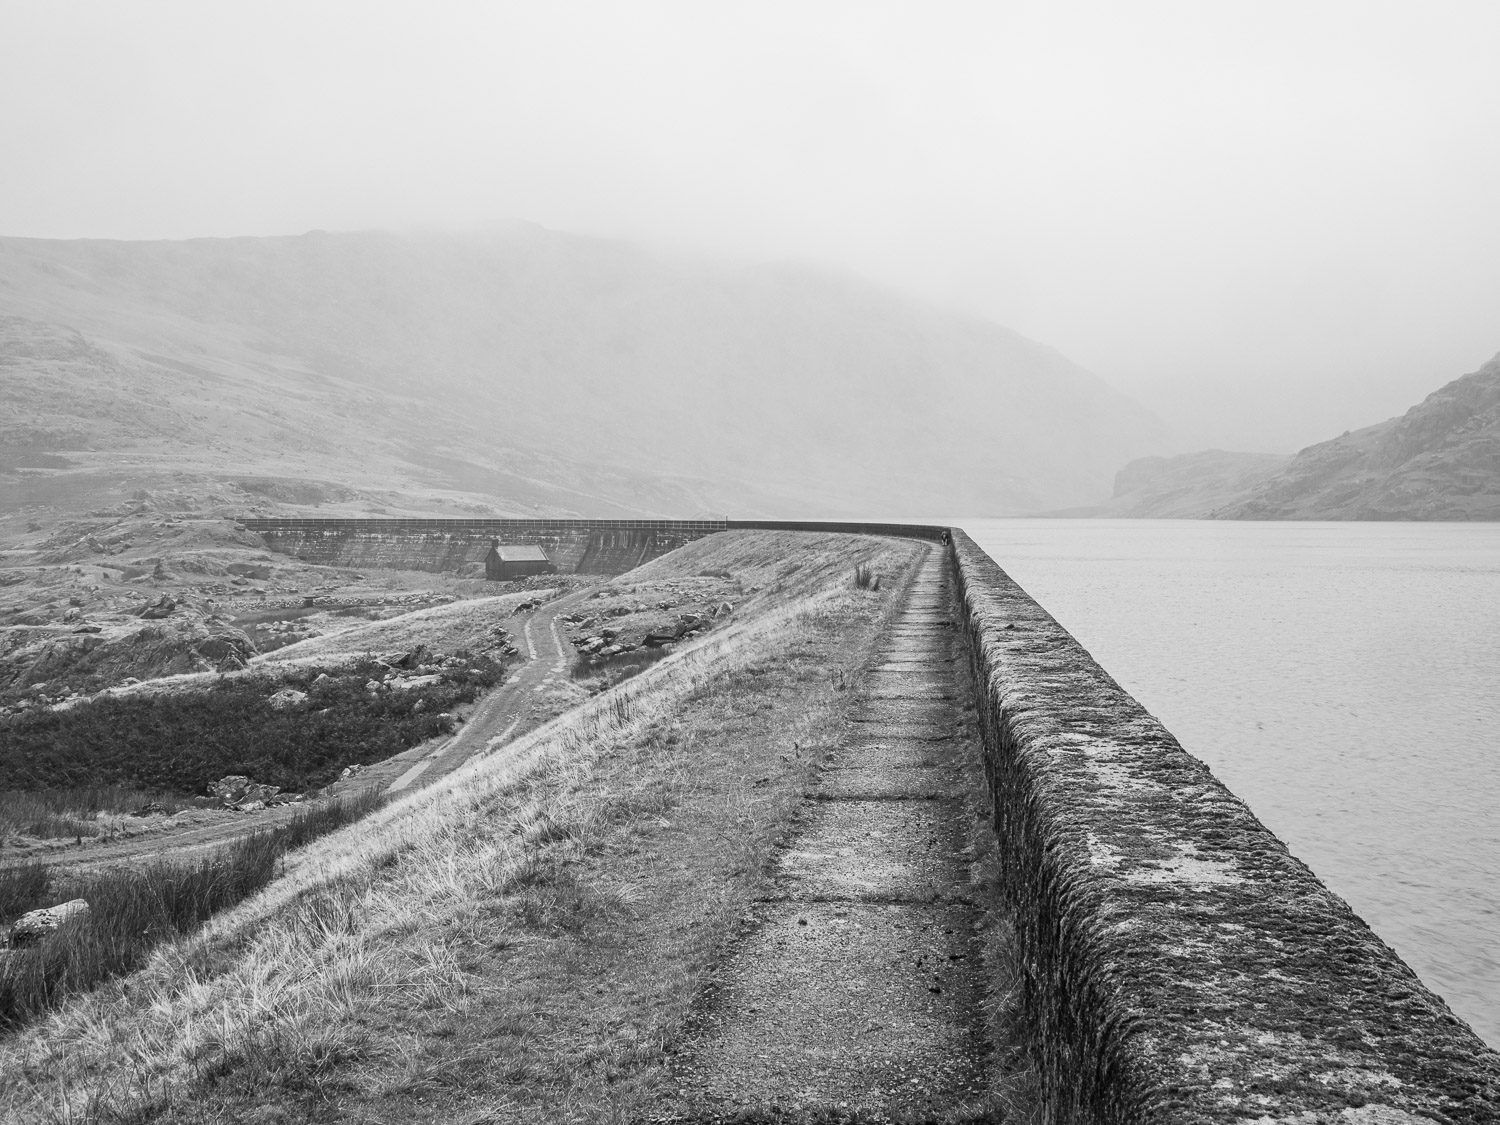 A Black And White Landscape Photograph Of Seathwaite Tarn Reservoir On A Misty Day In The Lake District